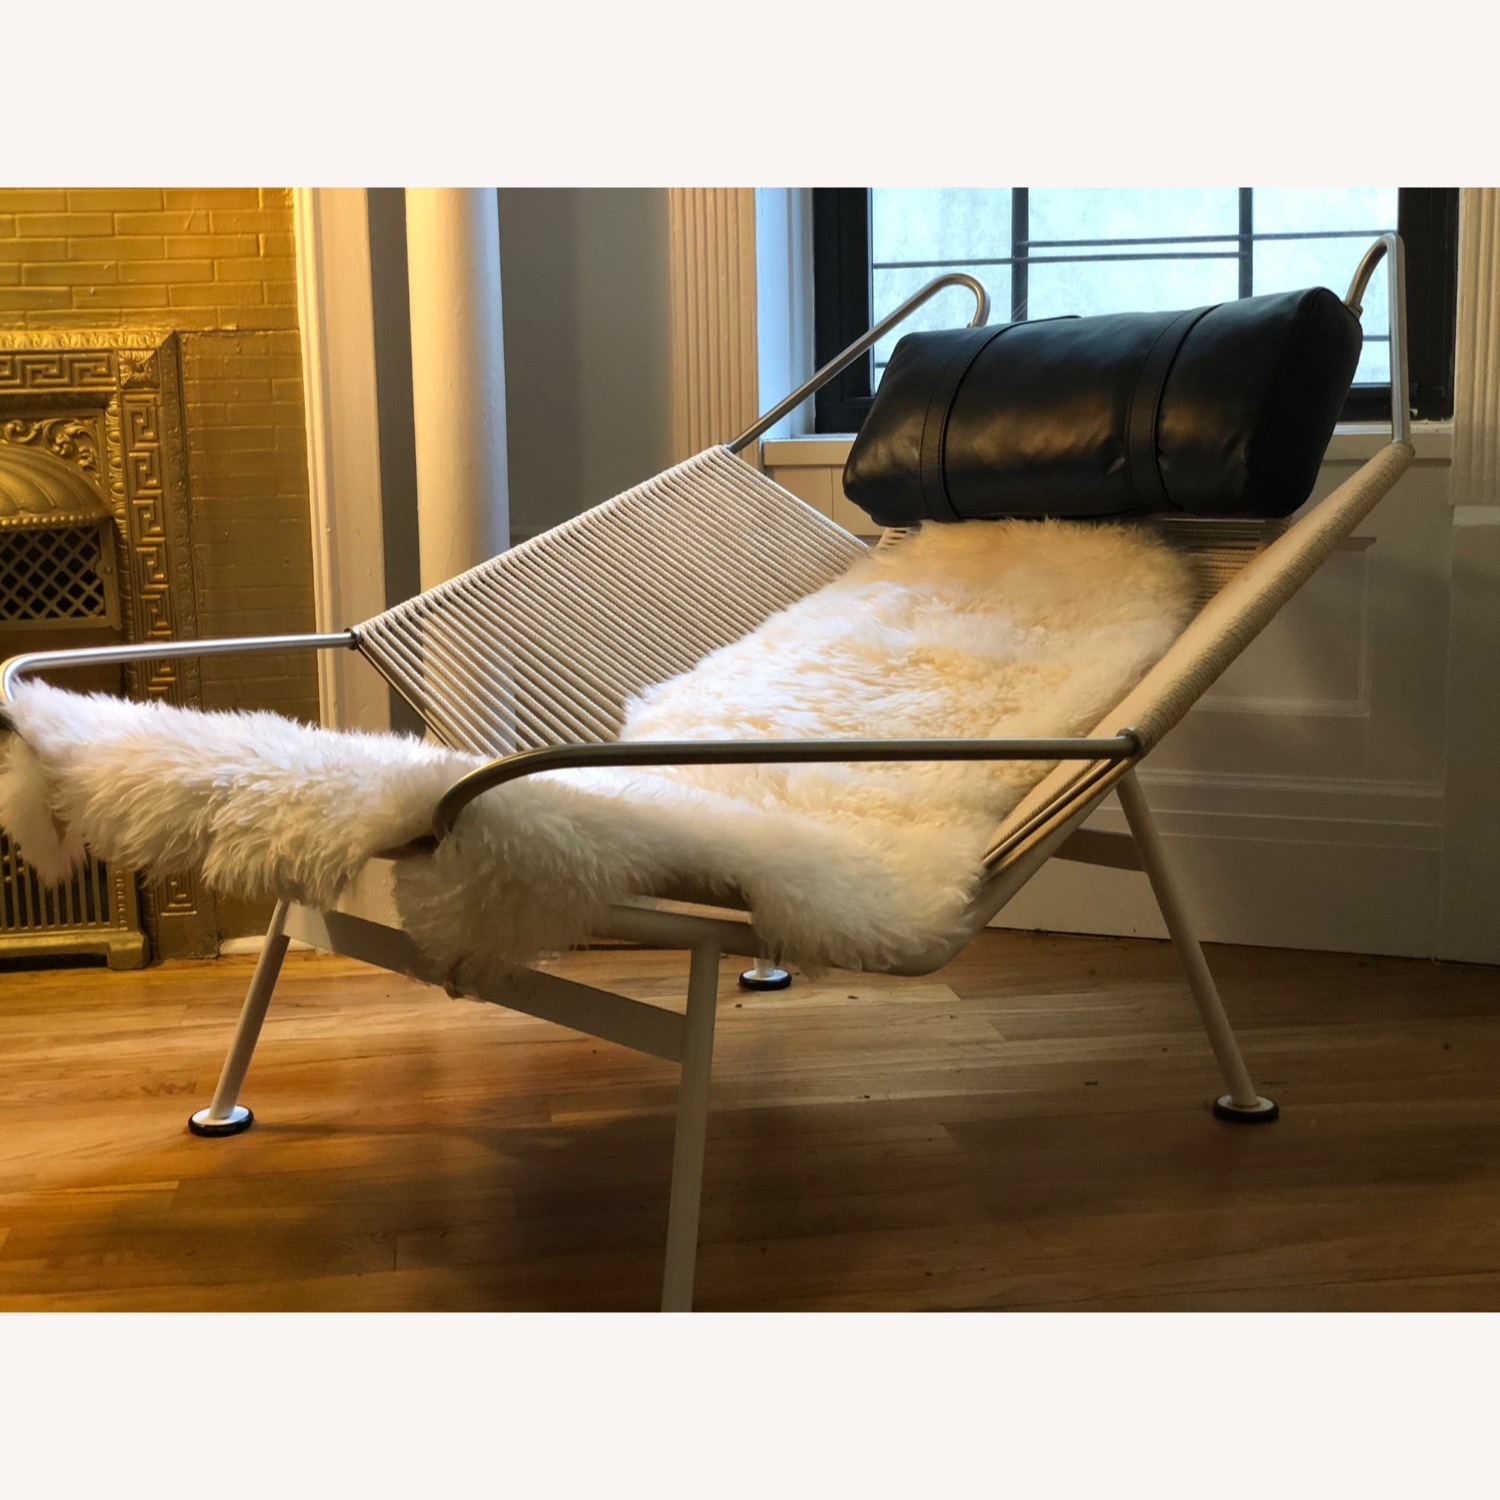 Rove Concepts Flag Halyard Chair - image-7